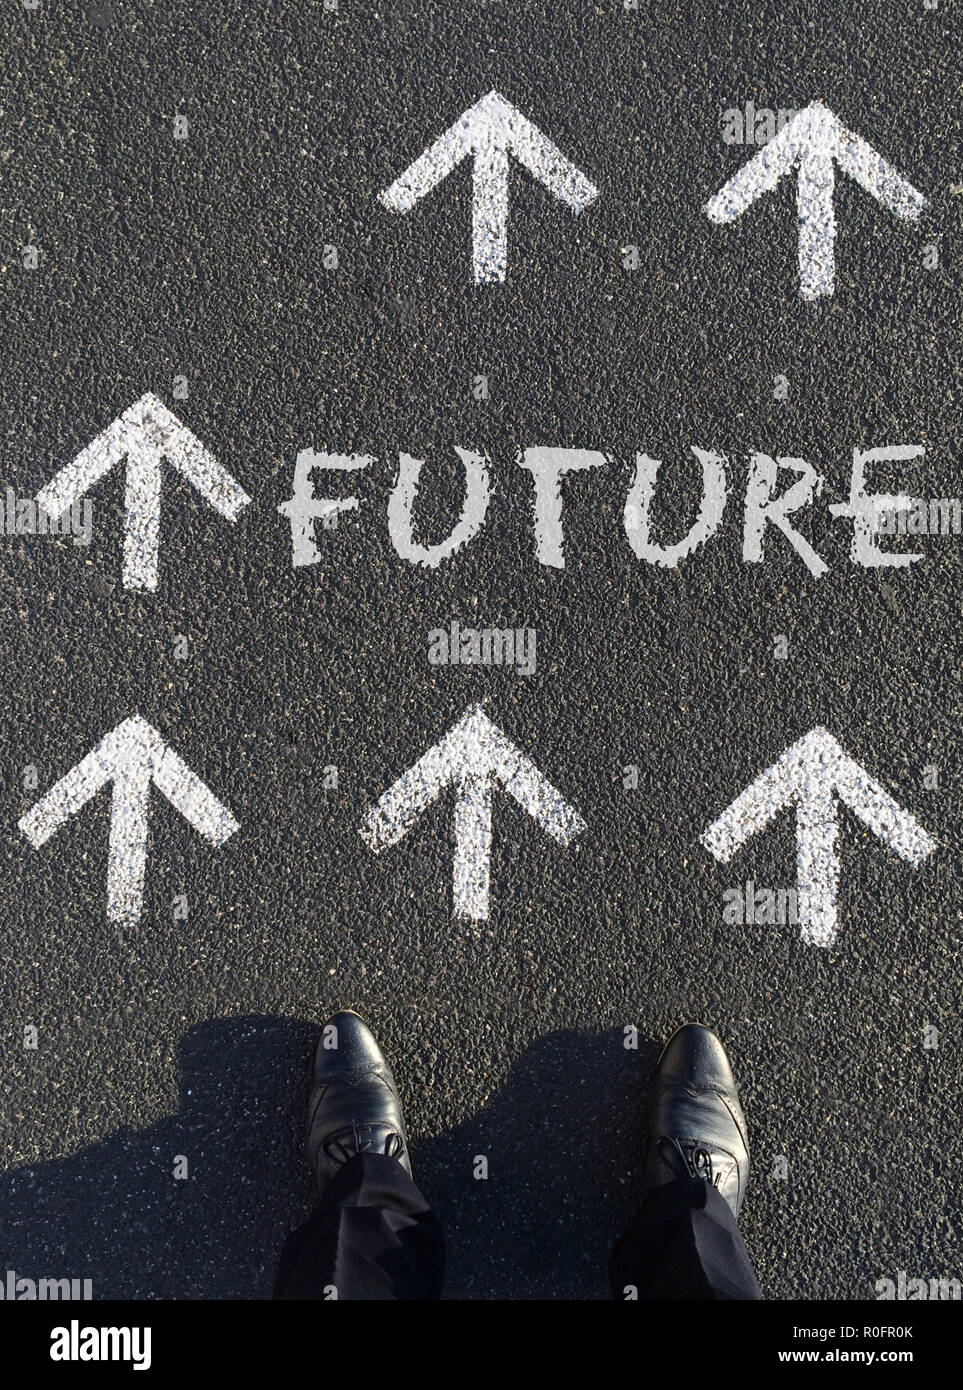 Moving forward: A man deciding on his future - Stock Image